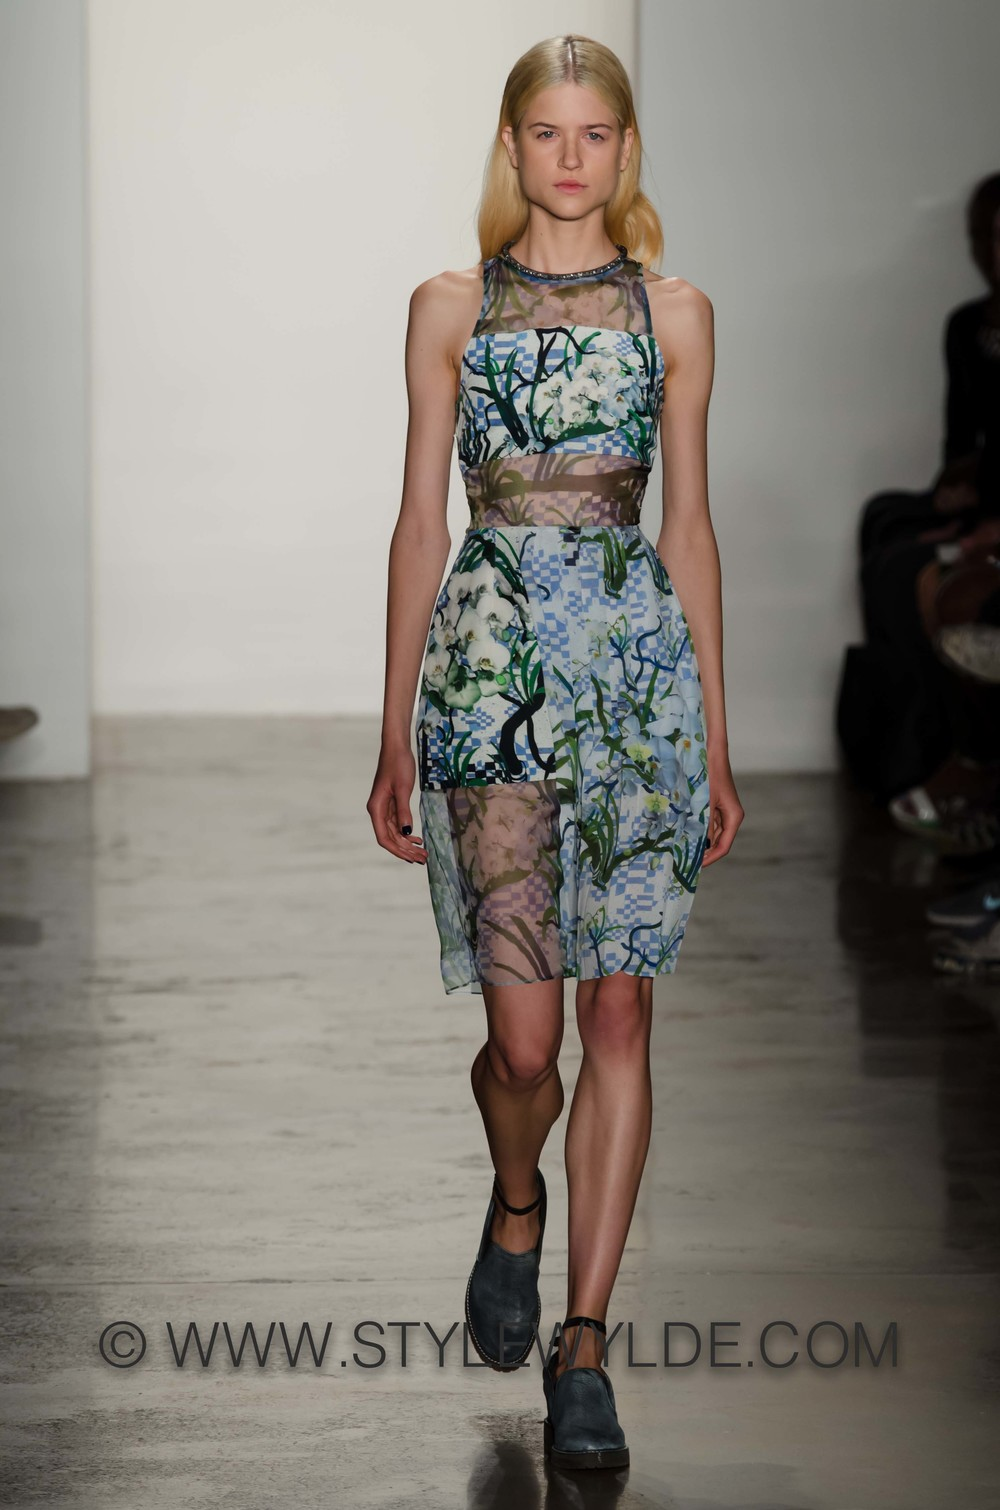 stylewylde_timo_weiland_gallery_ss2014-30.jpg